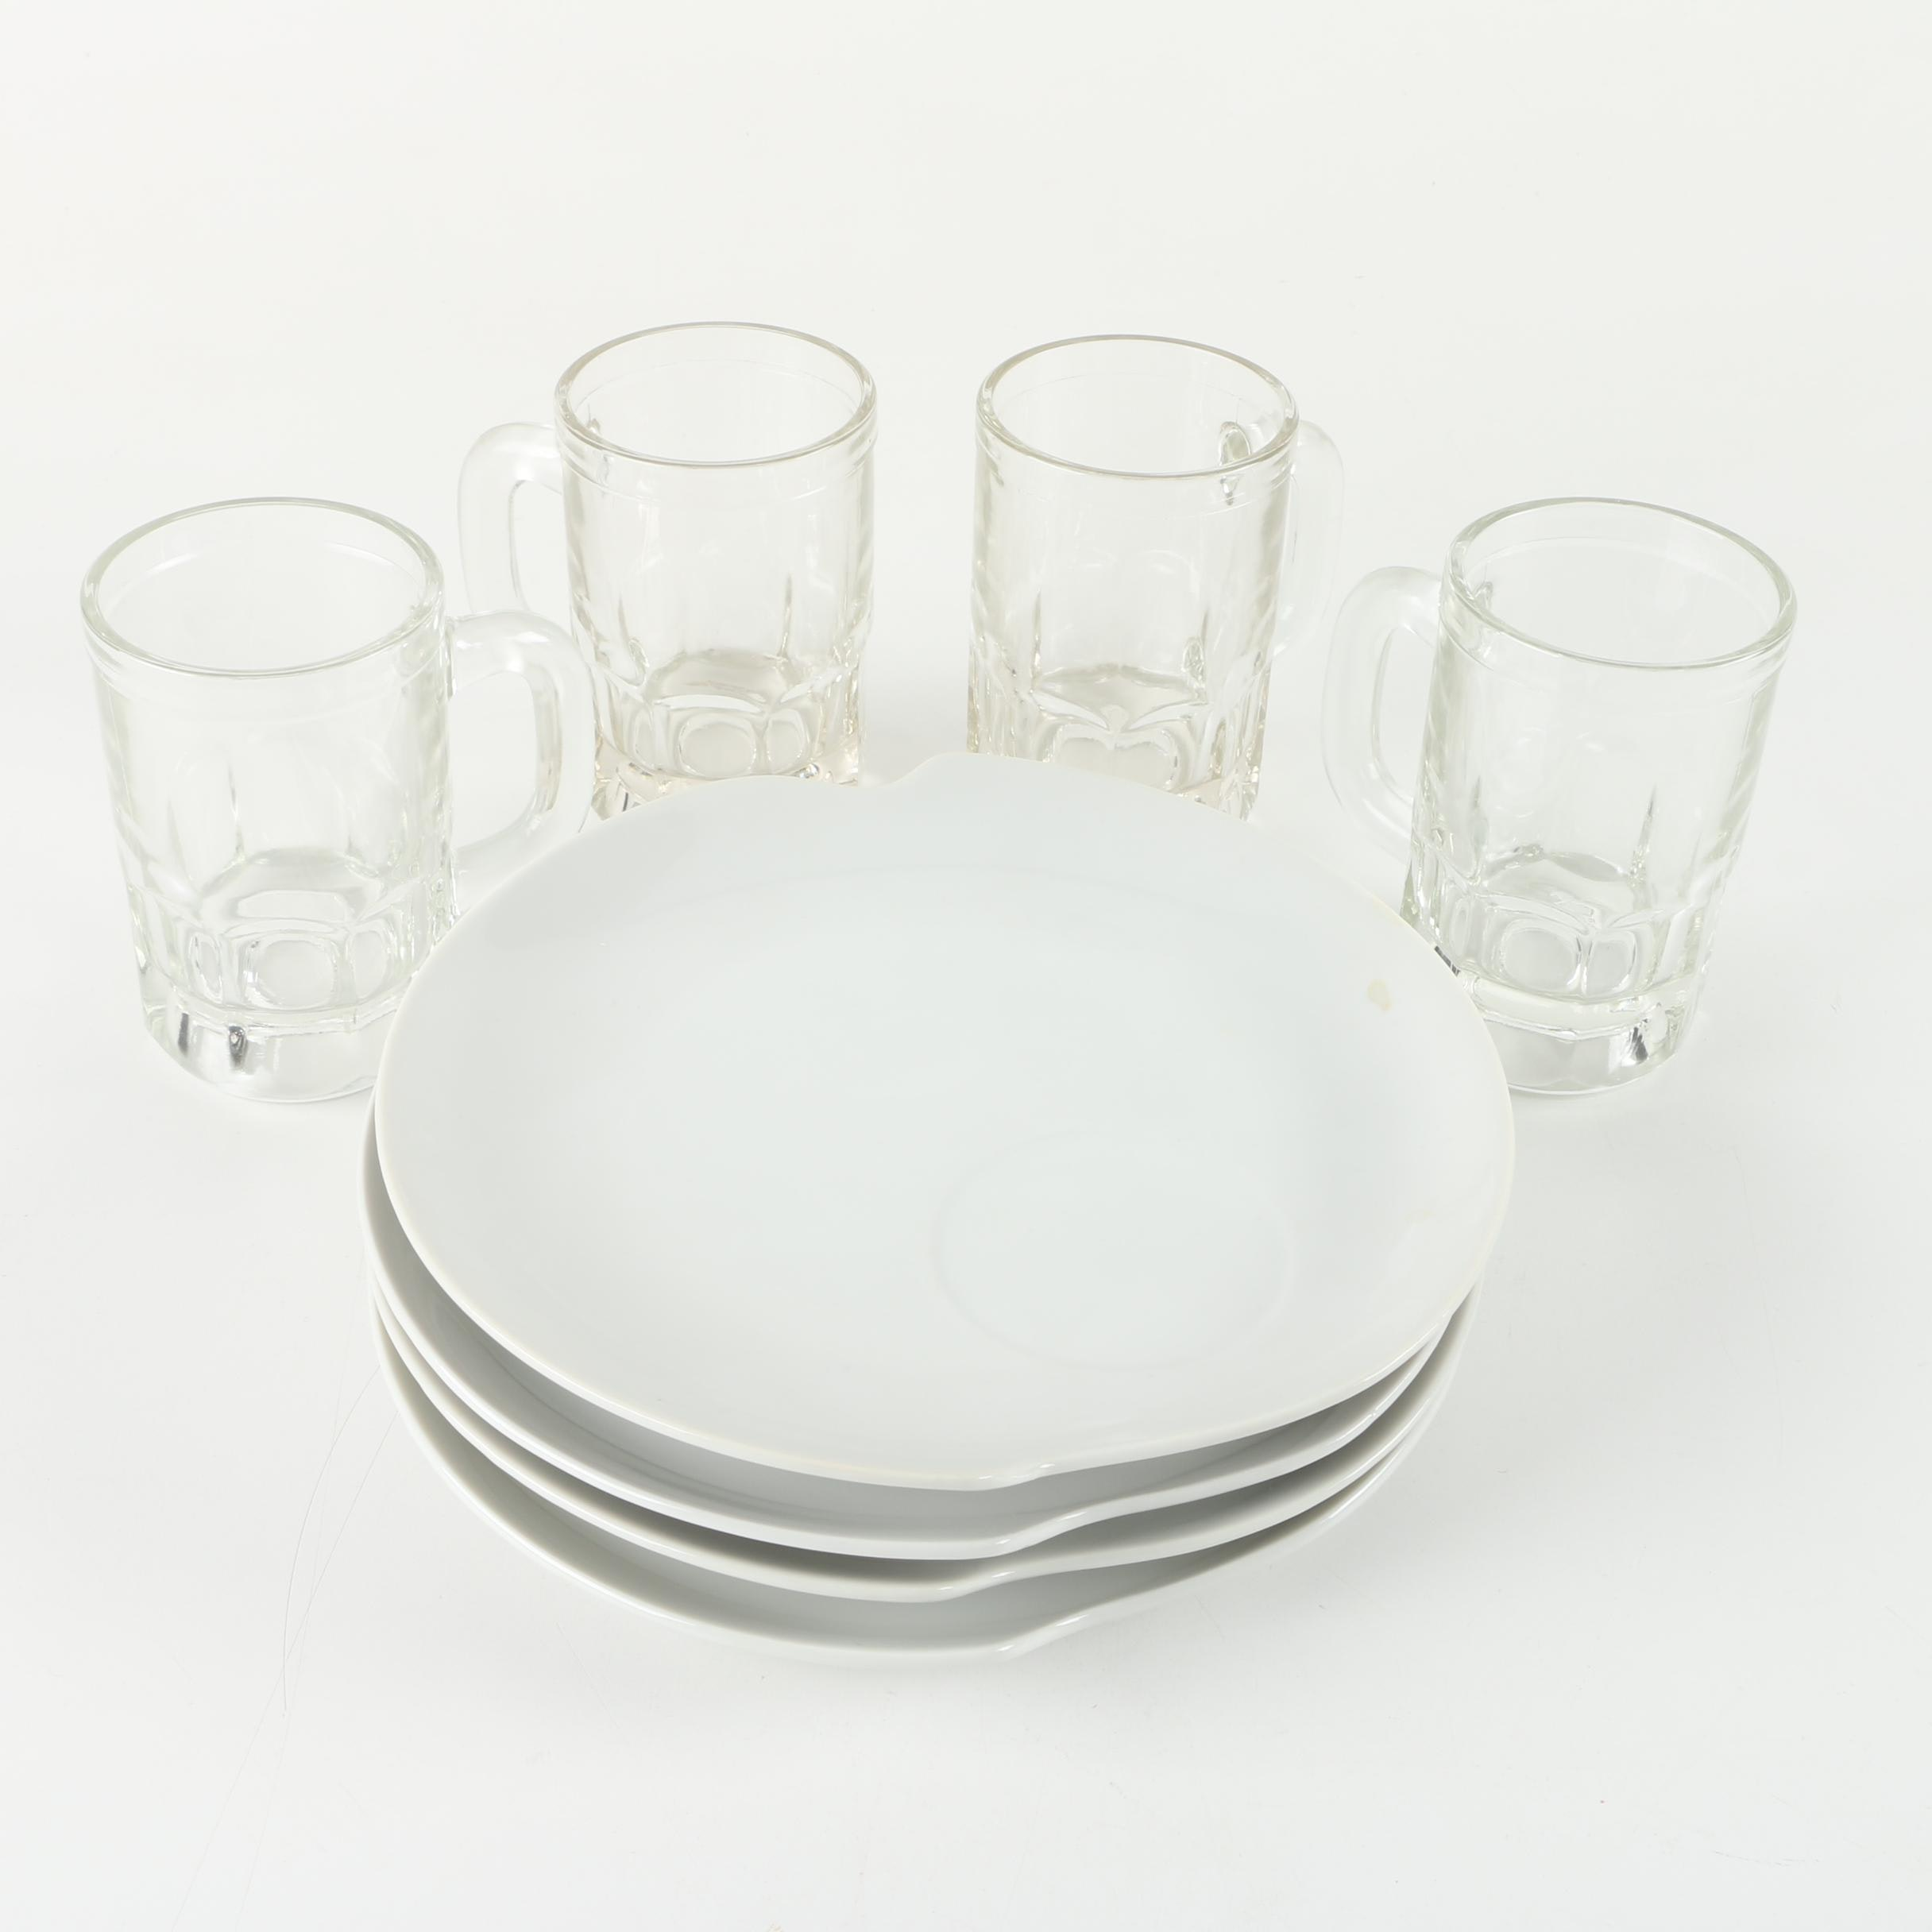 Snack Plates and Glass Mugs